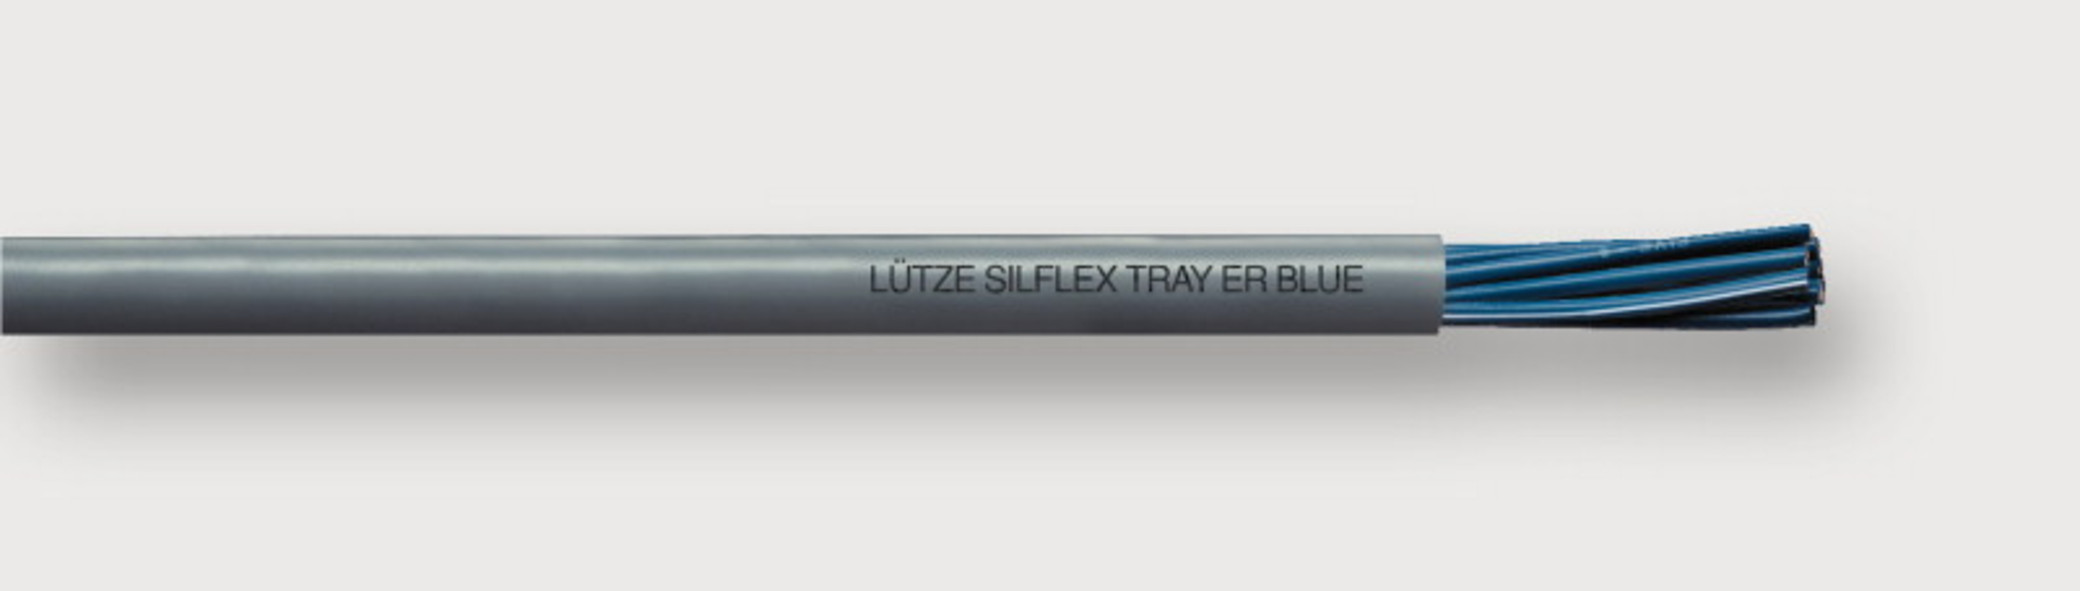 A3251812 - LÜTZE SILFLEX® Tray-ER Blue PVC with UL/TC-ER/CE Approvals, Blue Conductors for 24 V Applications